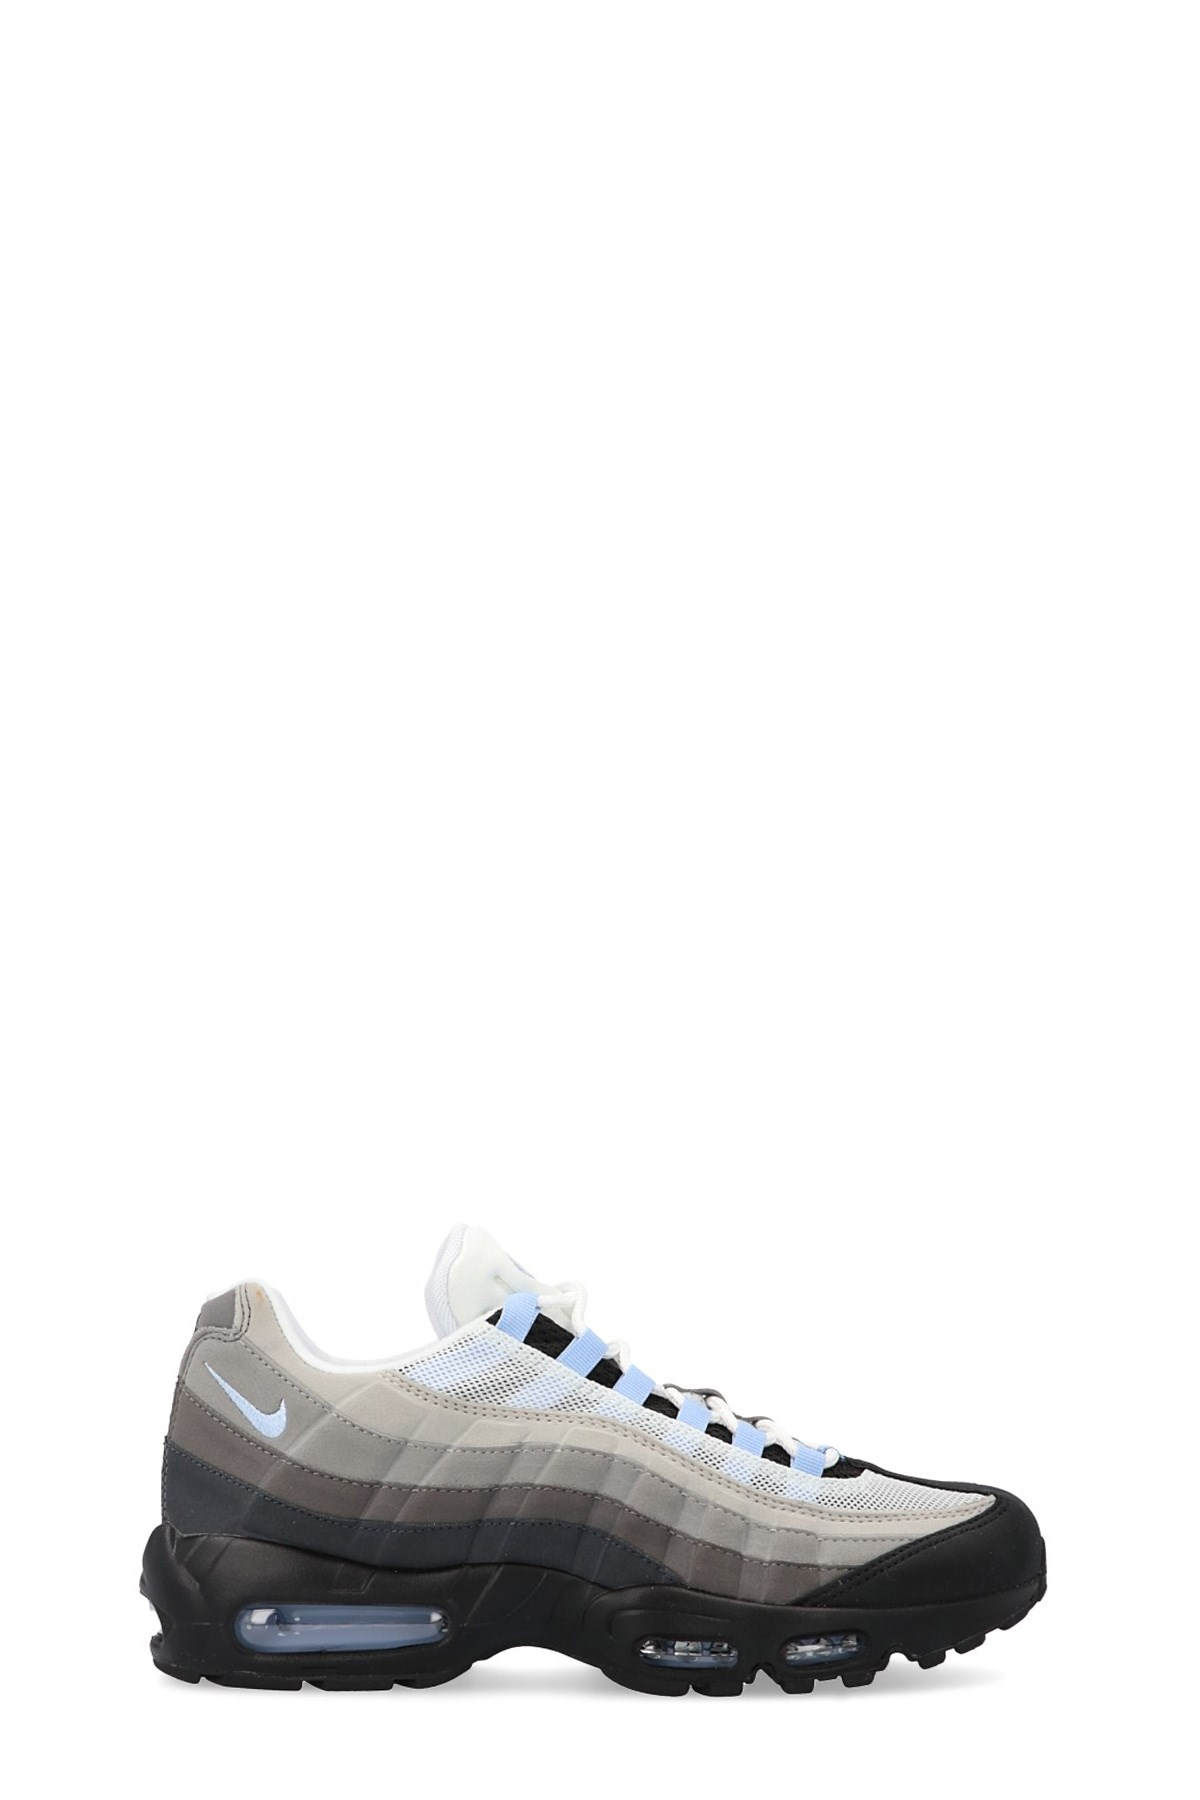 tout neuf 2f9f5 ab9bf 'Air max 95' sneakers